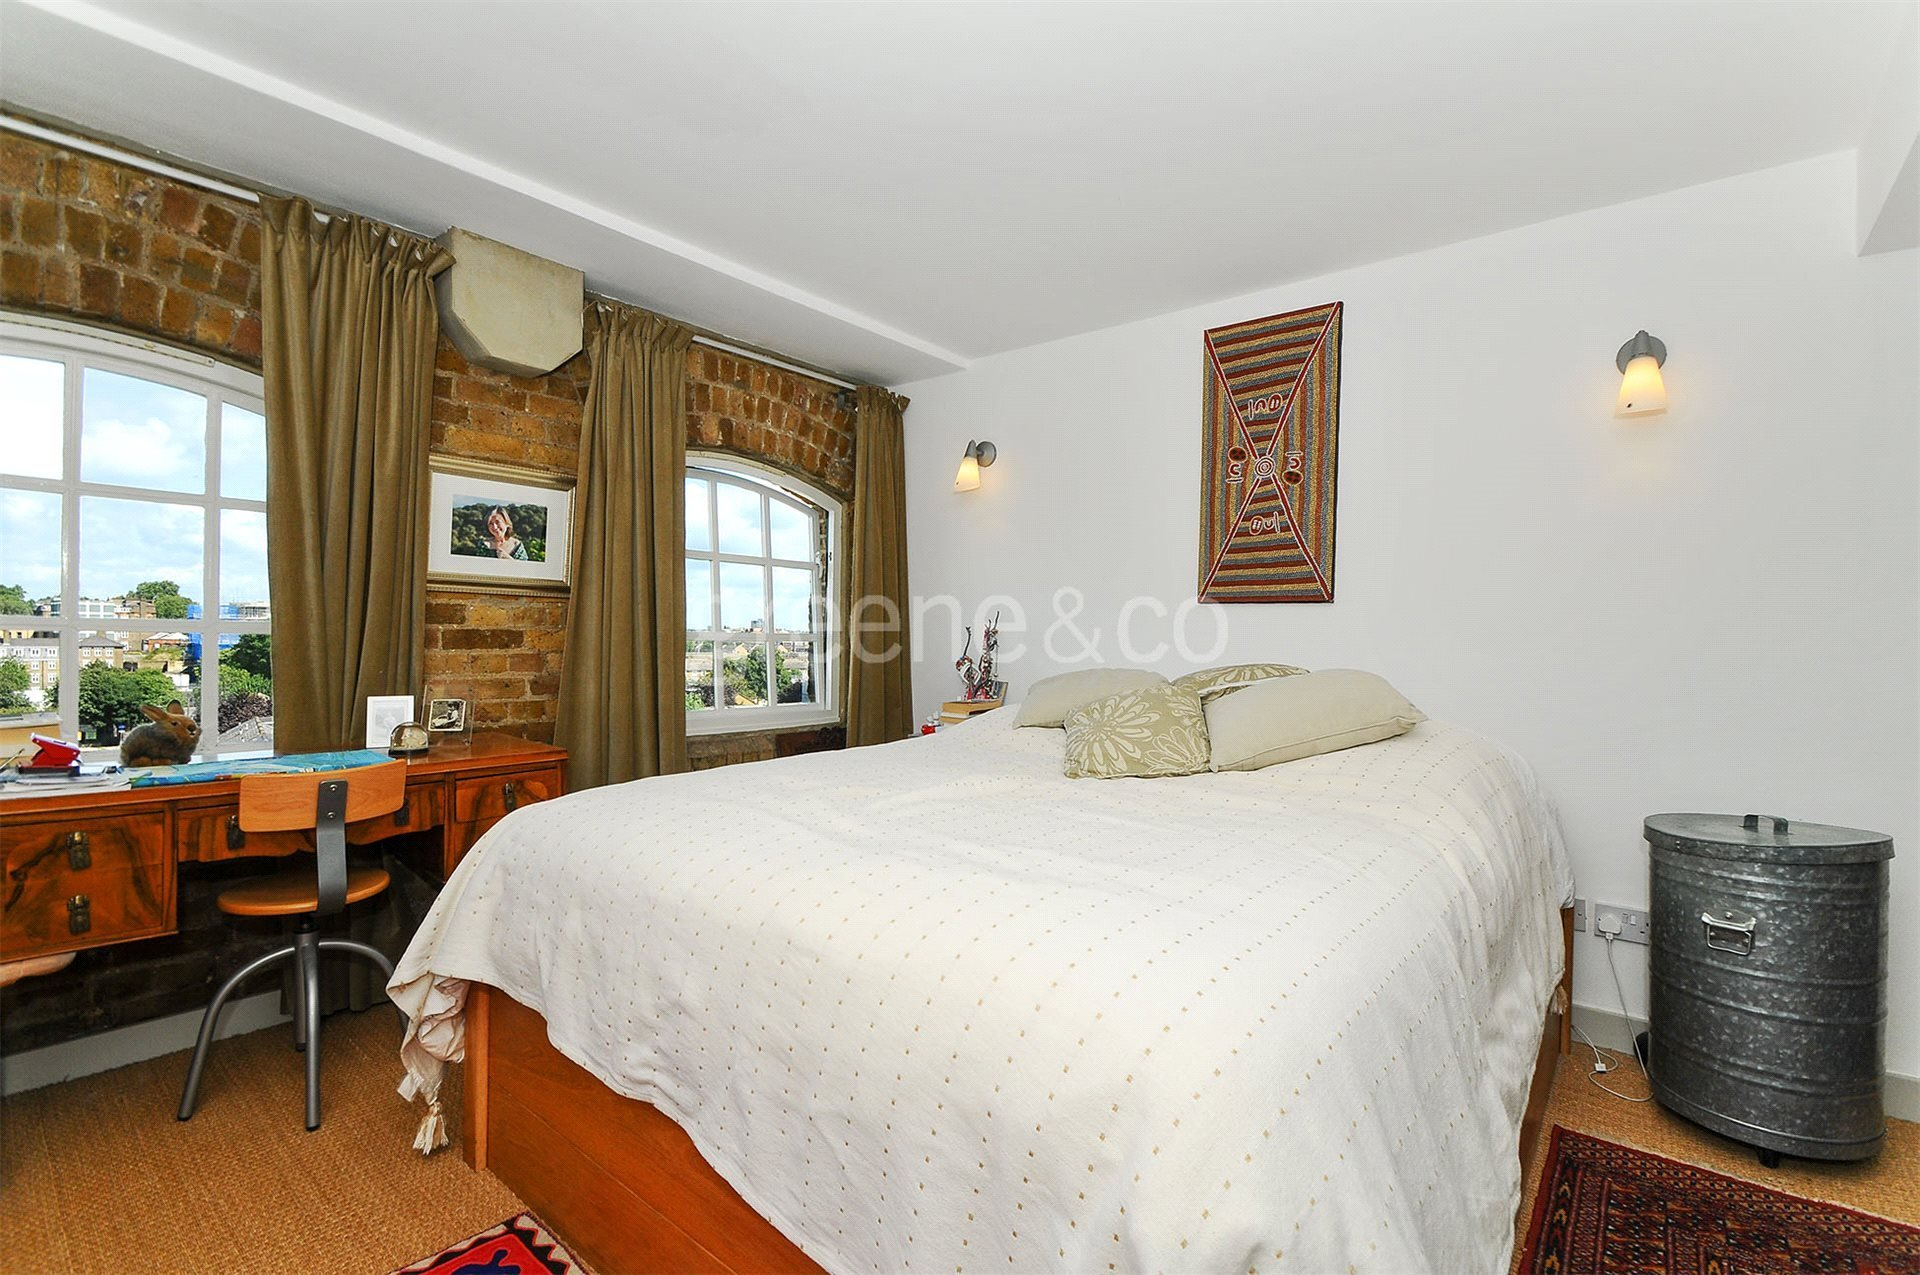 Best 2 Bedroom Apartment To Rent In Tannery House 6 Deal Street London E1 Cll160011 Greene Co With Pictures